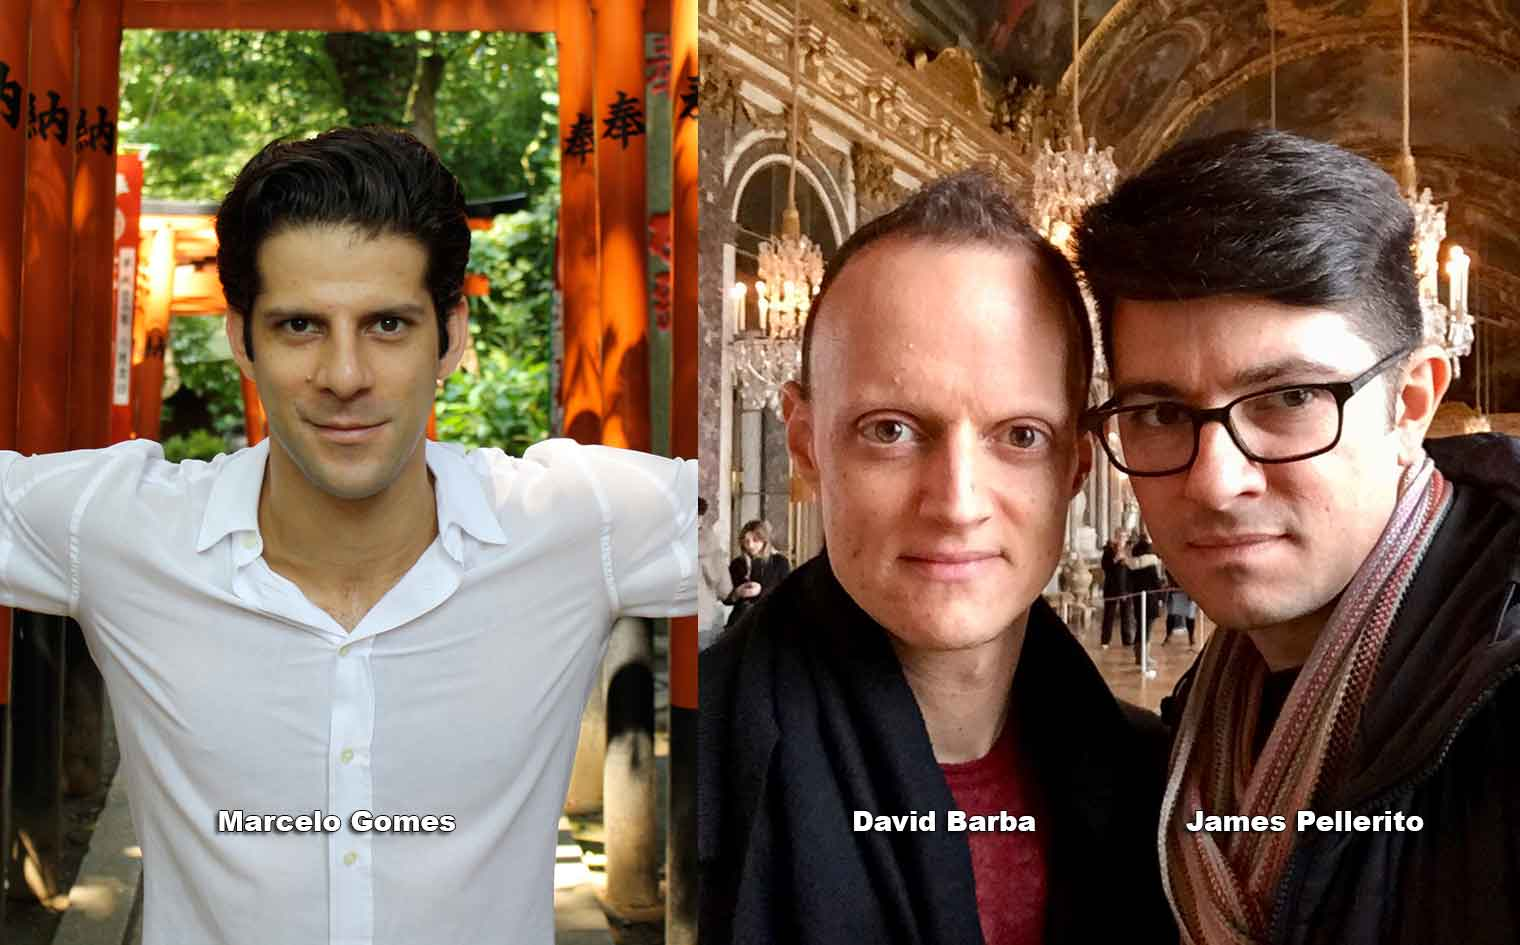 Q&As with ANATOMY OF A MALE BALLET DANCER Subject Marcelo Gomes and Filmmakers David Barba & James Pellerito